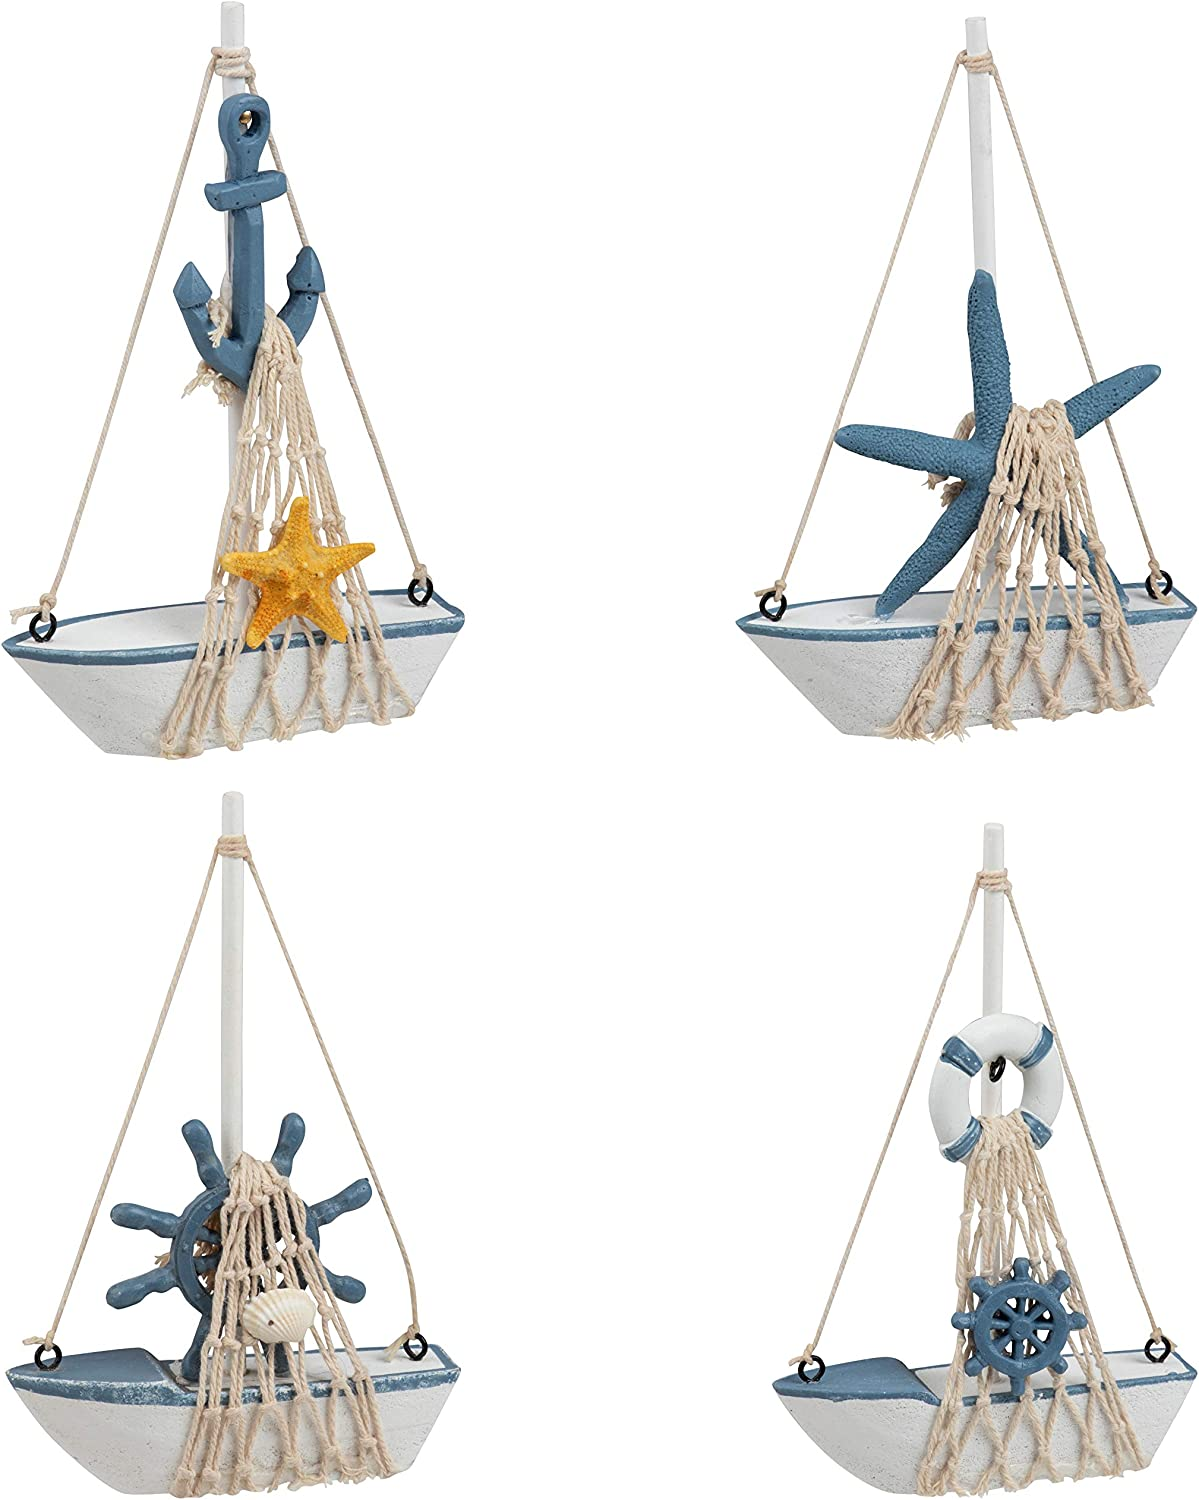 Juvale Mini Sailboat Model Decoration - 4-Piece Wooden Miniature Sailing Boat Home Decor Set, Beach Nautical Design, Navy Blue and White, 4.4 x 6.8 x 1.25 Inches